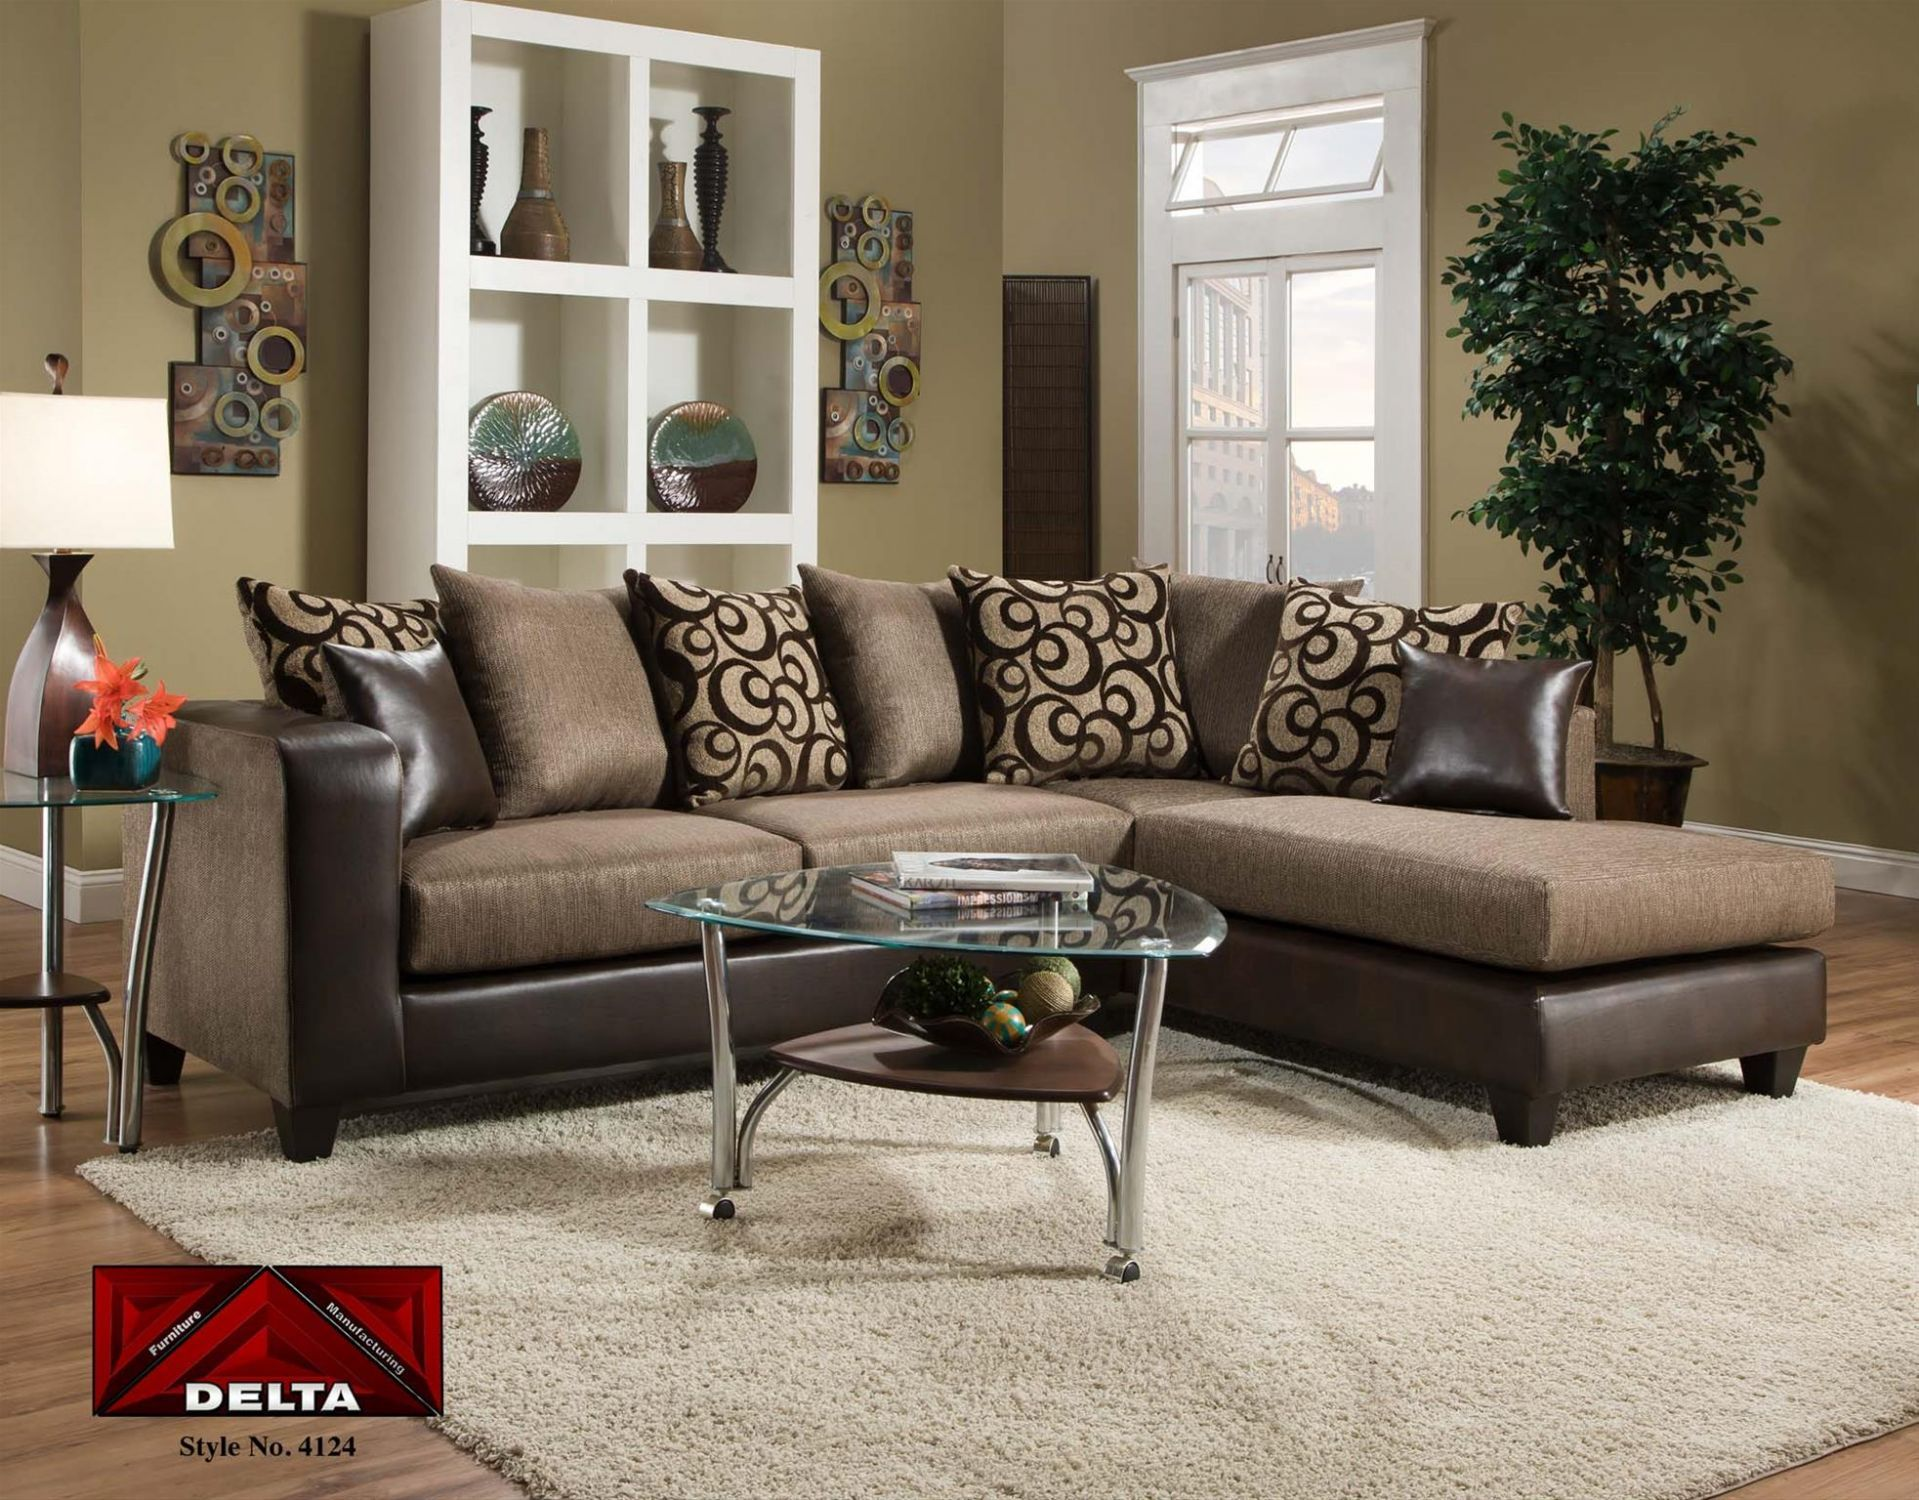 Update Your Living Room With Our Designer Chaise Sectional  $798 Endearing Living Room With Sectional Design Inspiration